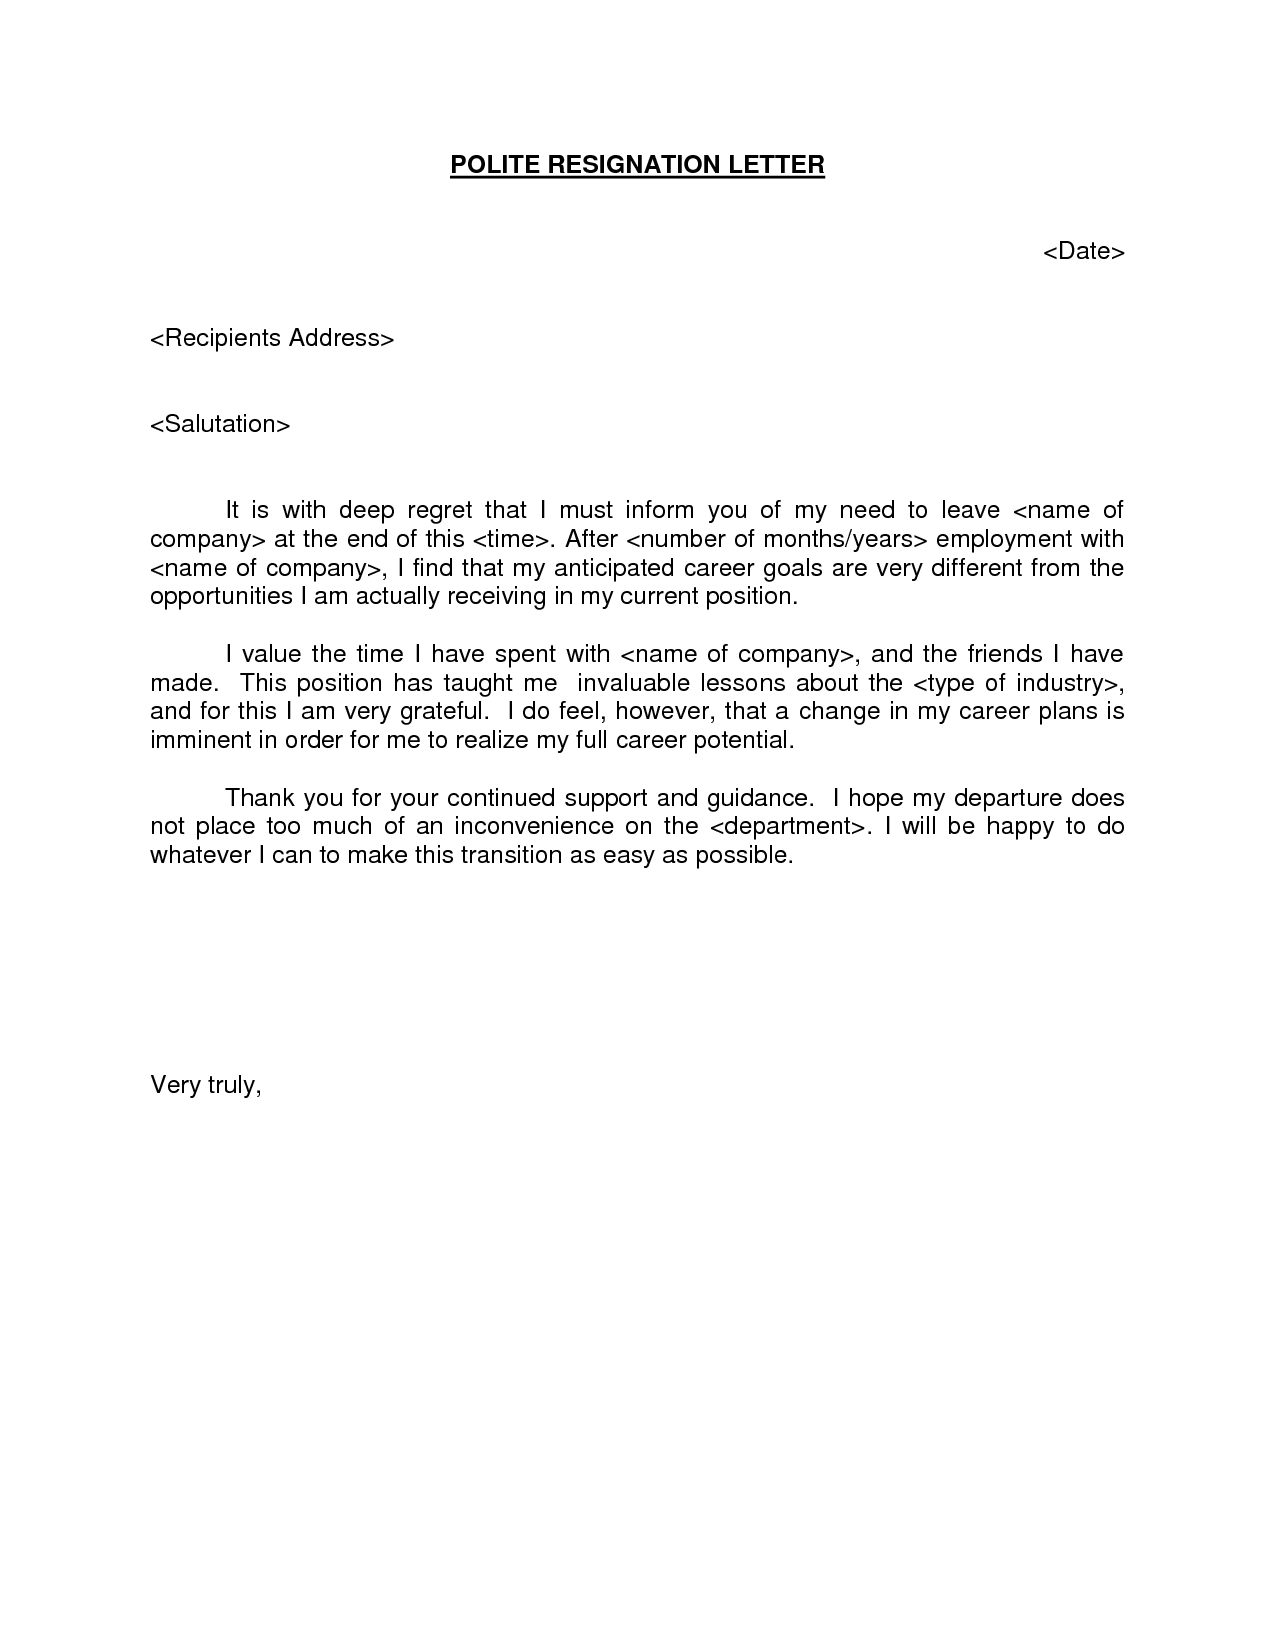 photos of template of resignation letter in word marketing polite resignation letter bestdealformoneywriting a letter of resignation email letter sample